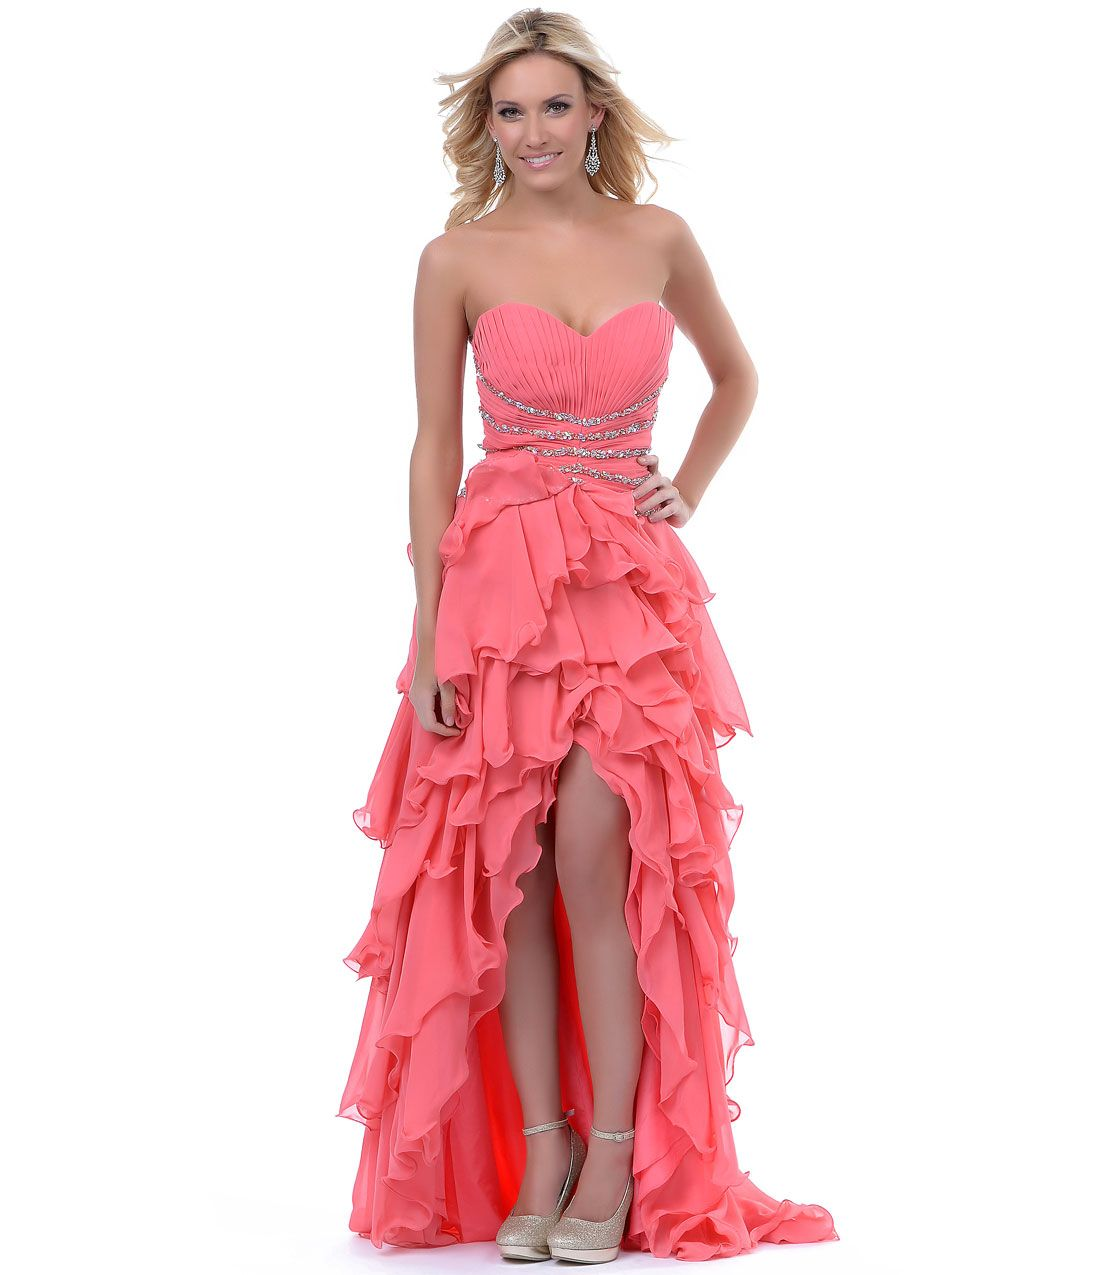 Coral Ruffles Chiffon High Low Prom Dress - Unique Vintage ...